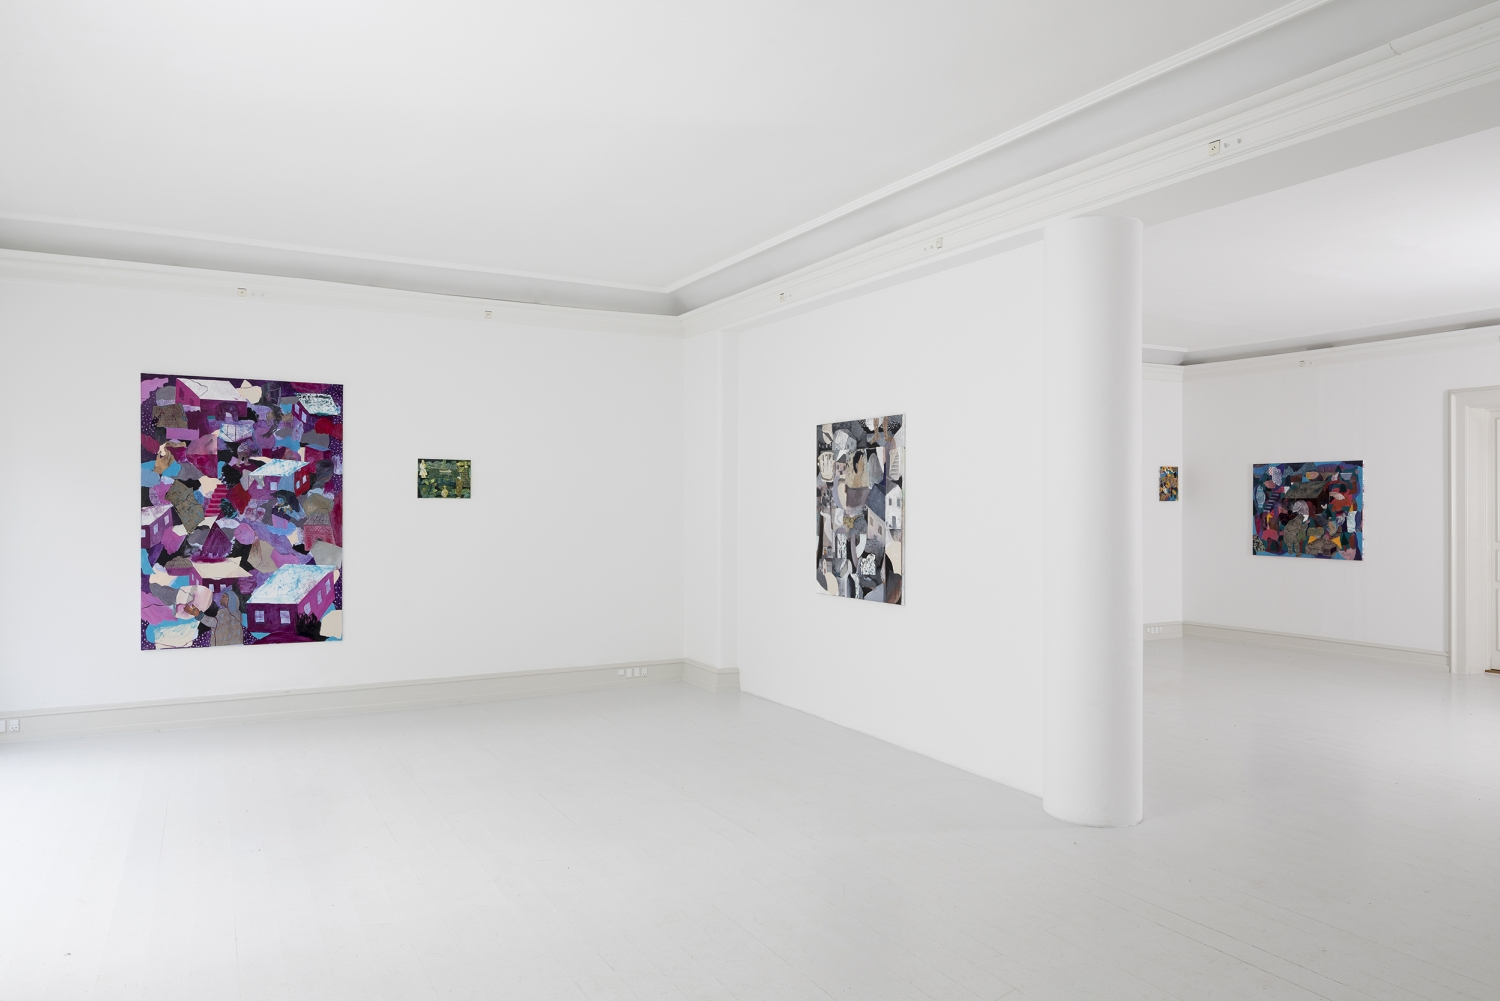 Tom Anholt - Installation View, Tom Anholt, Sixty, Galerie Mikael Andersen, Copenhagen (photo: Jan Søndergaard)